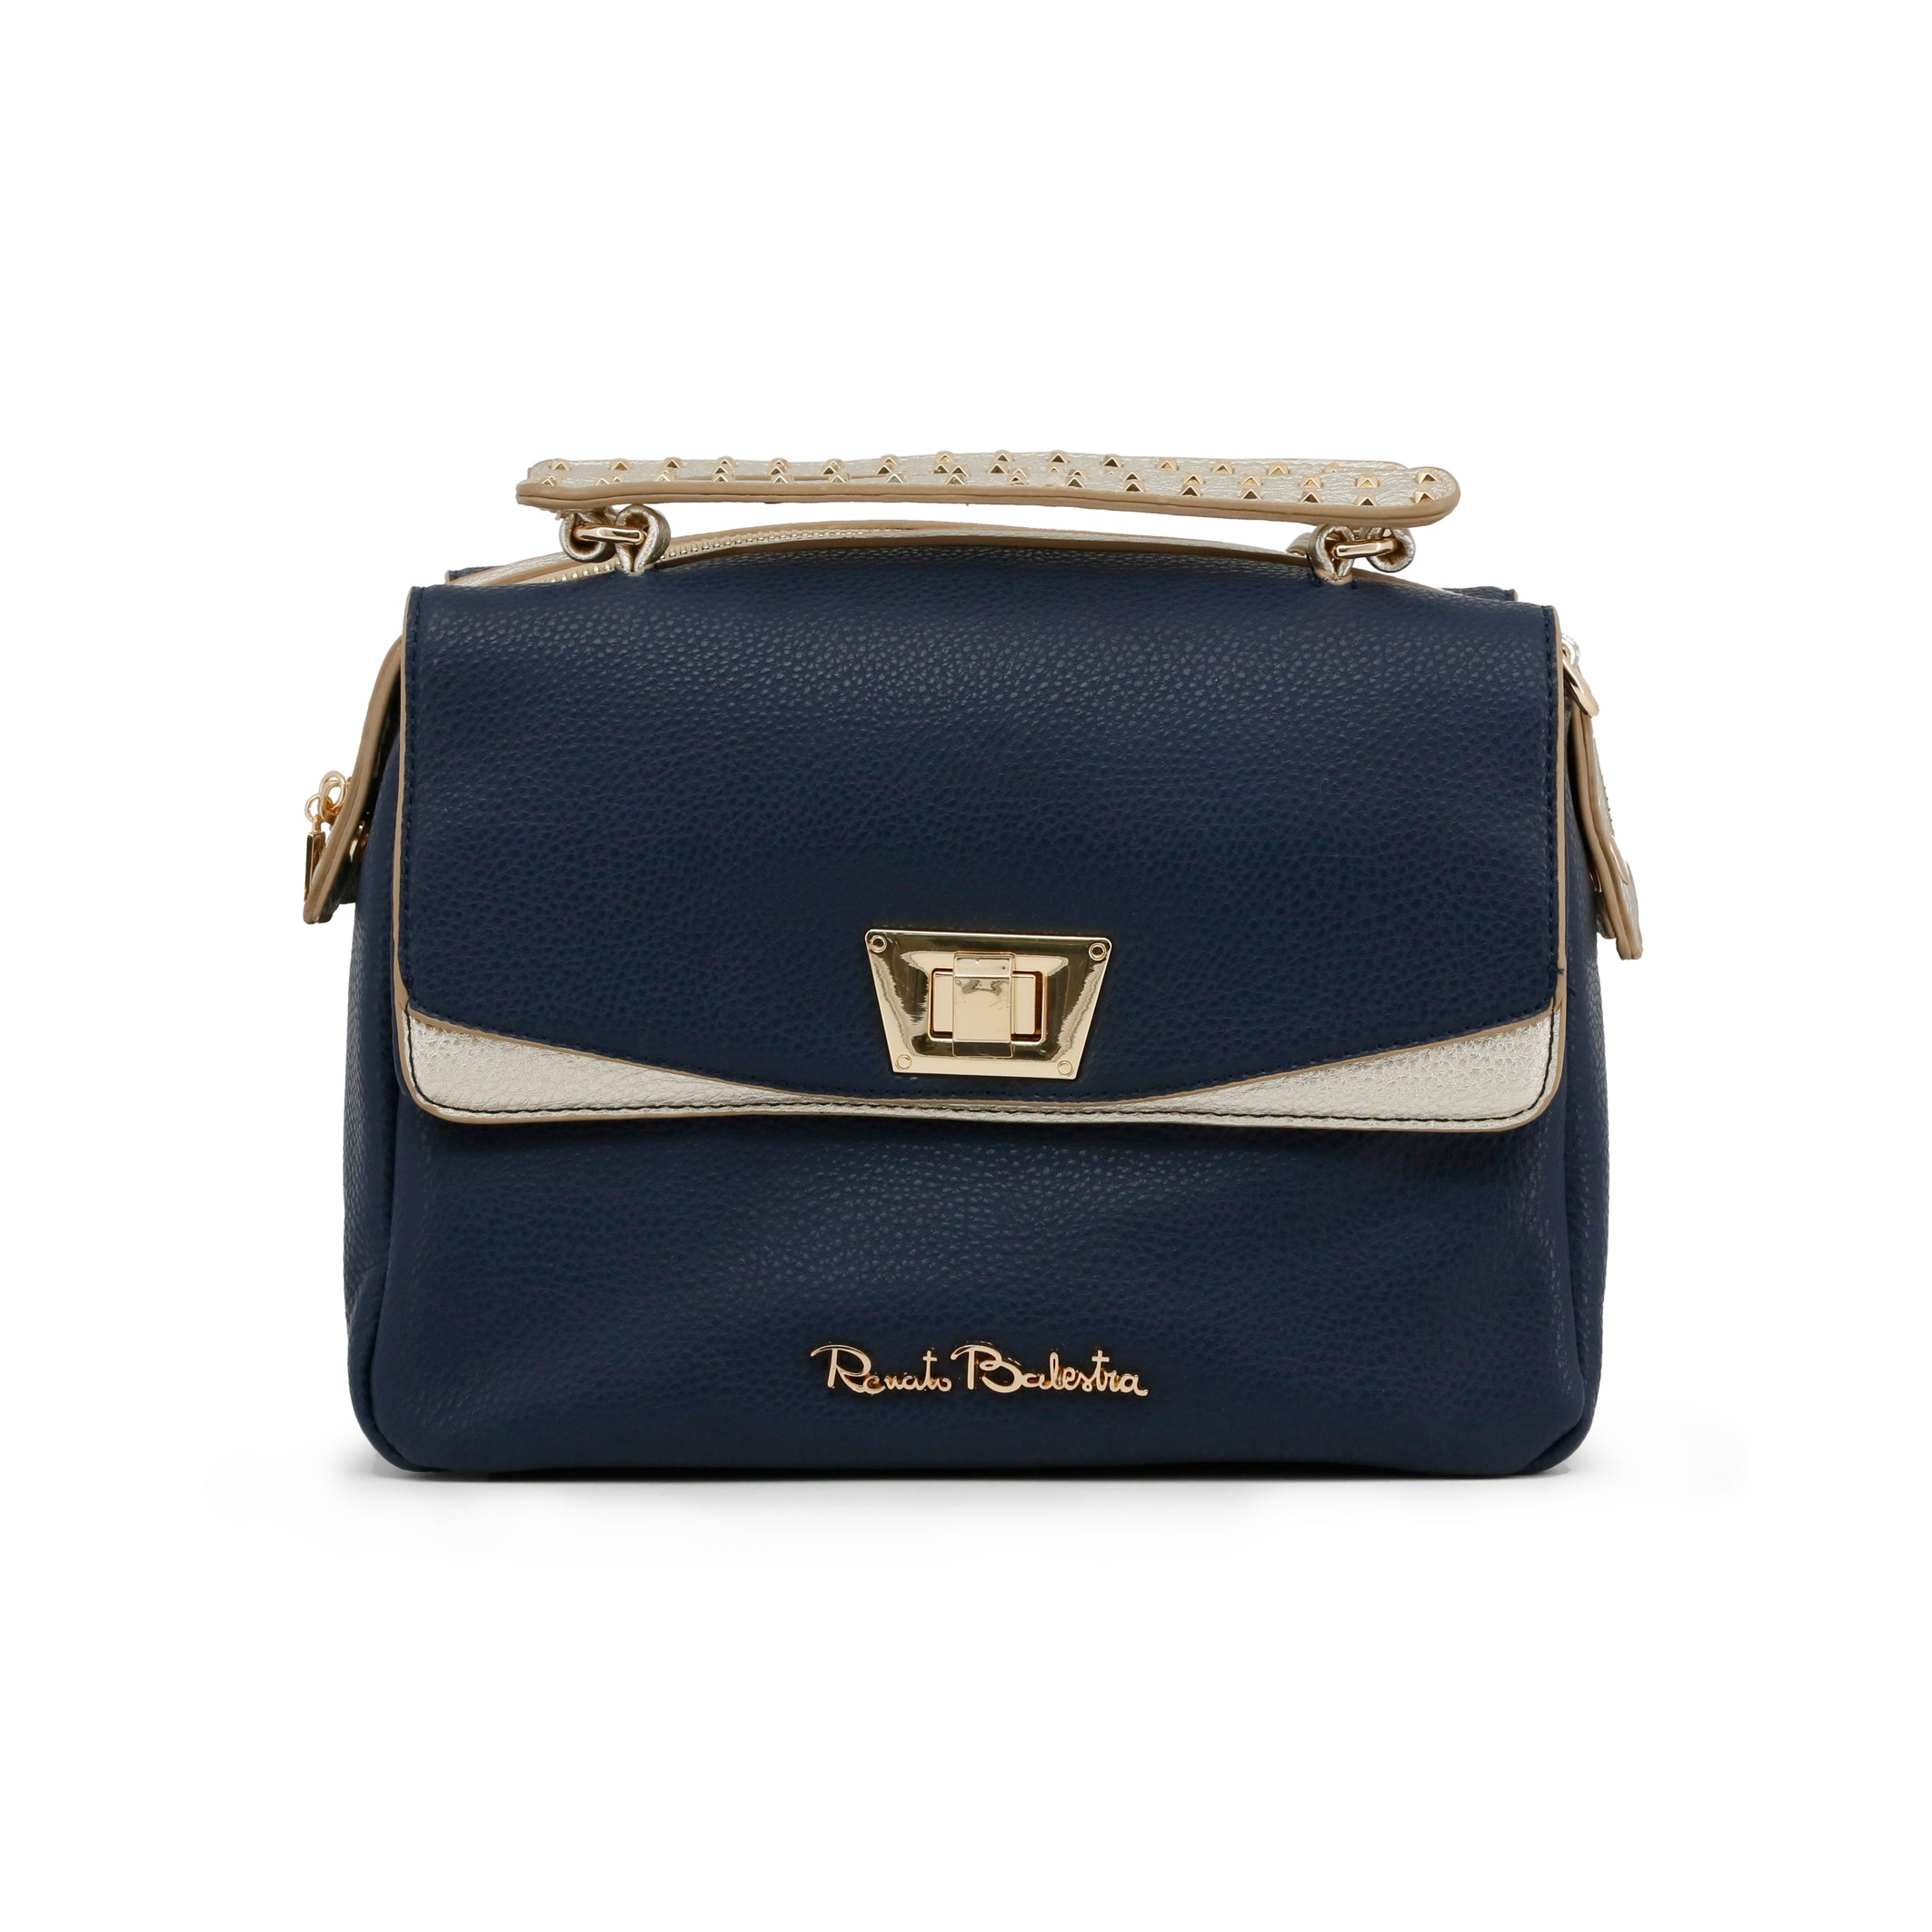 Renato Balestra Womens Handbags COLDPLAY-RB18S-115-3